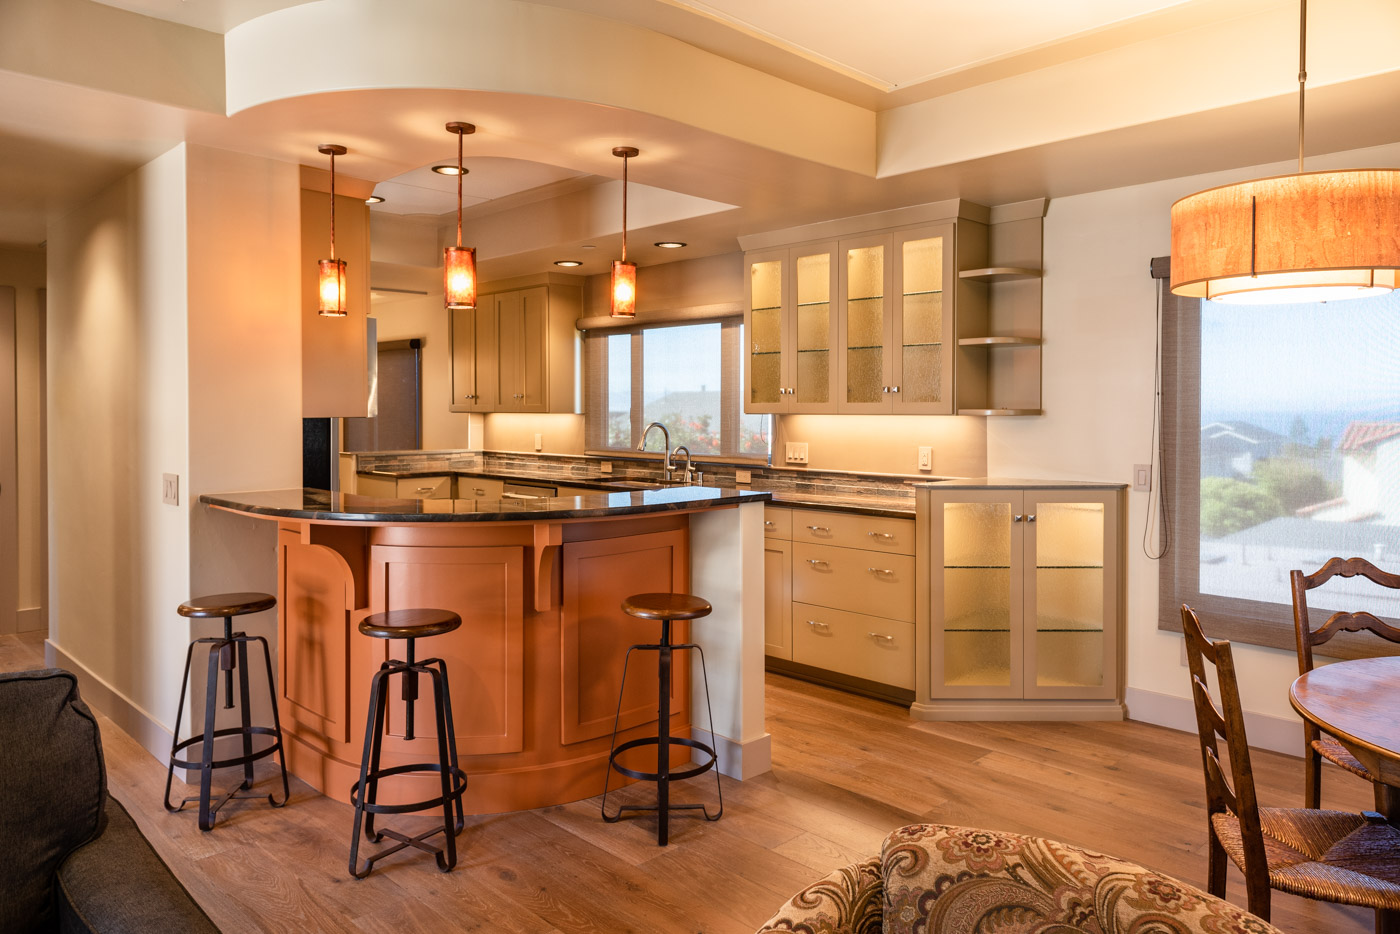 A G-shaped kitchen layout with custom orange and beige painted cabinets